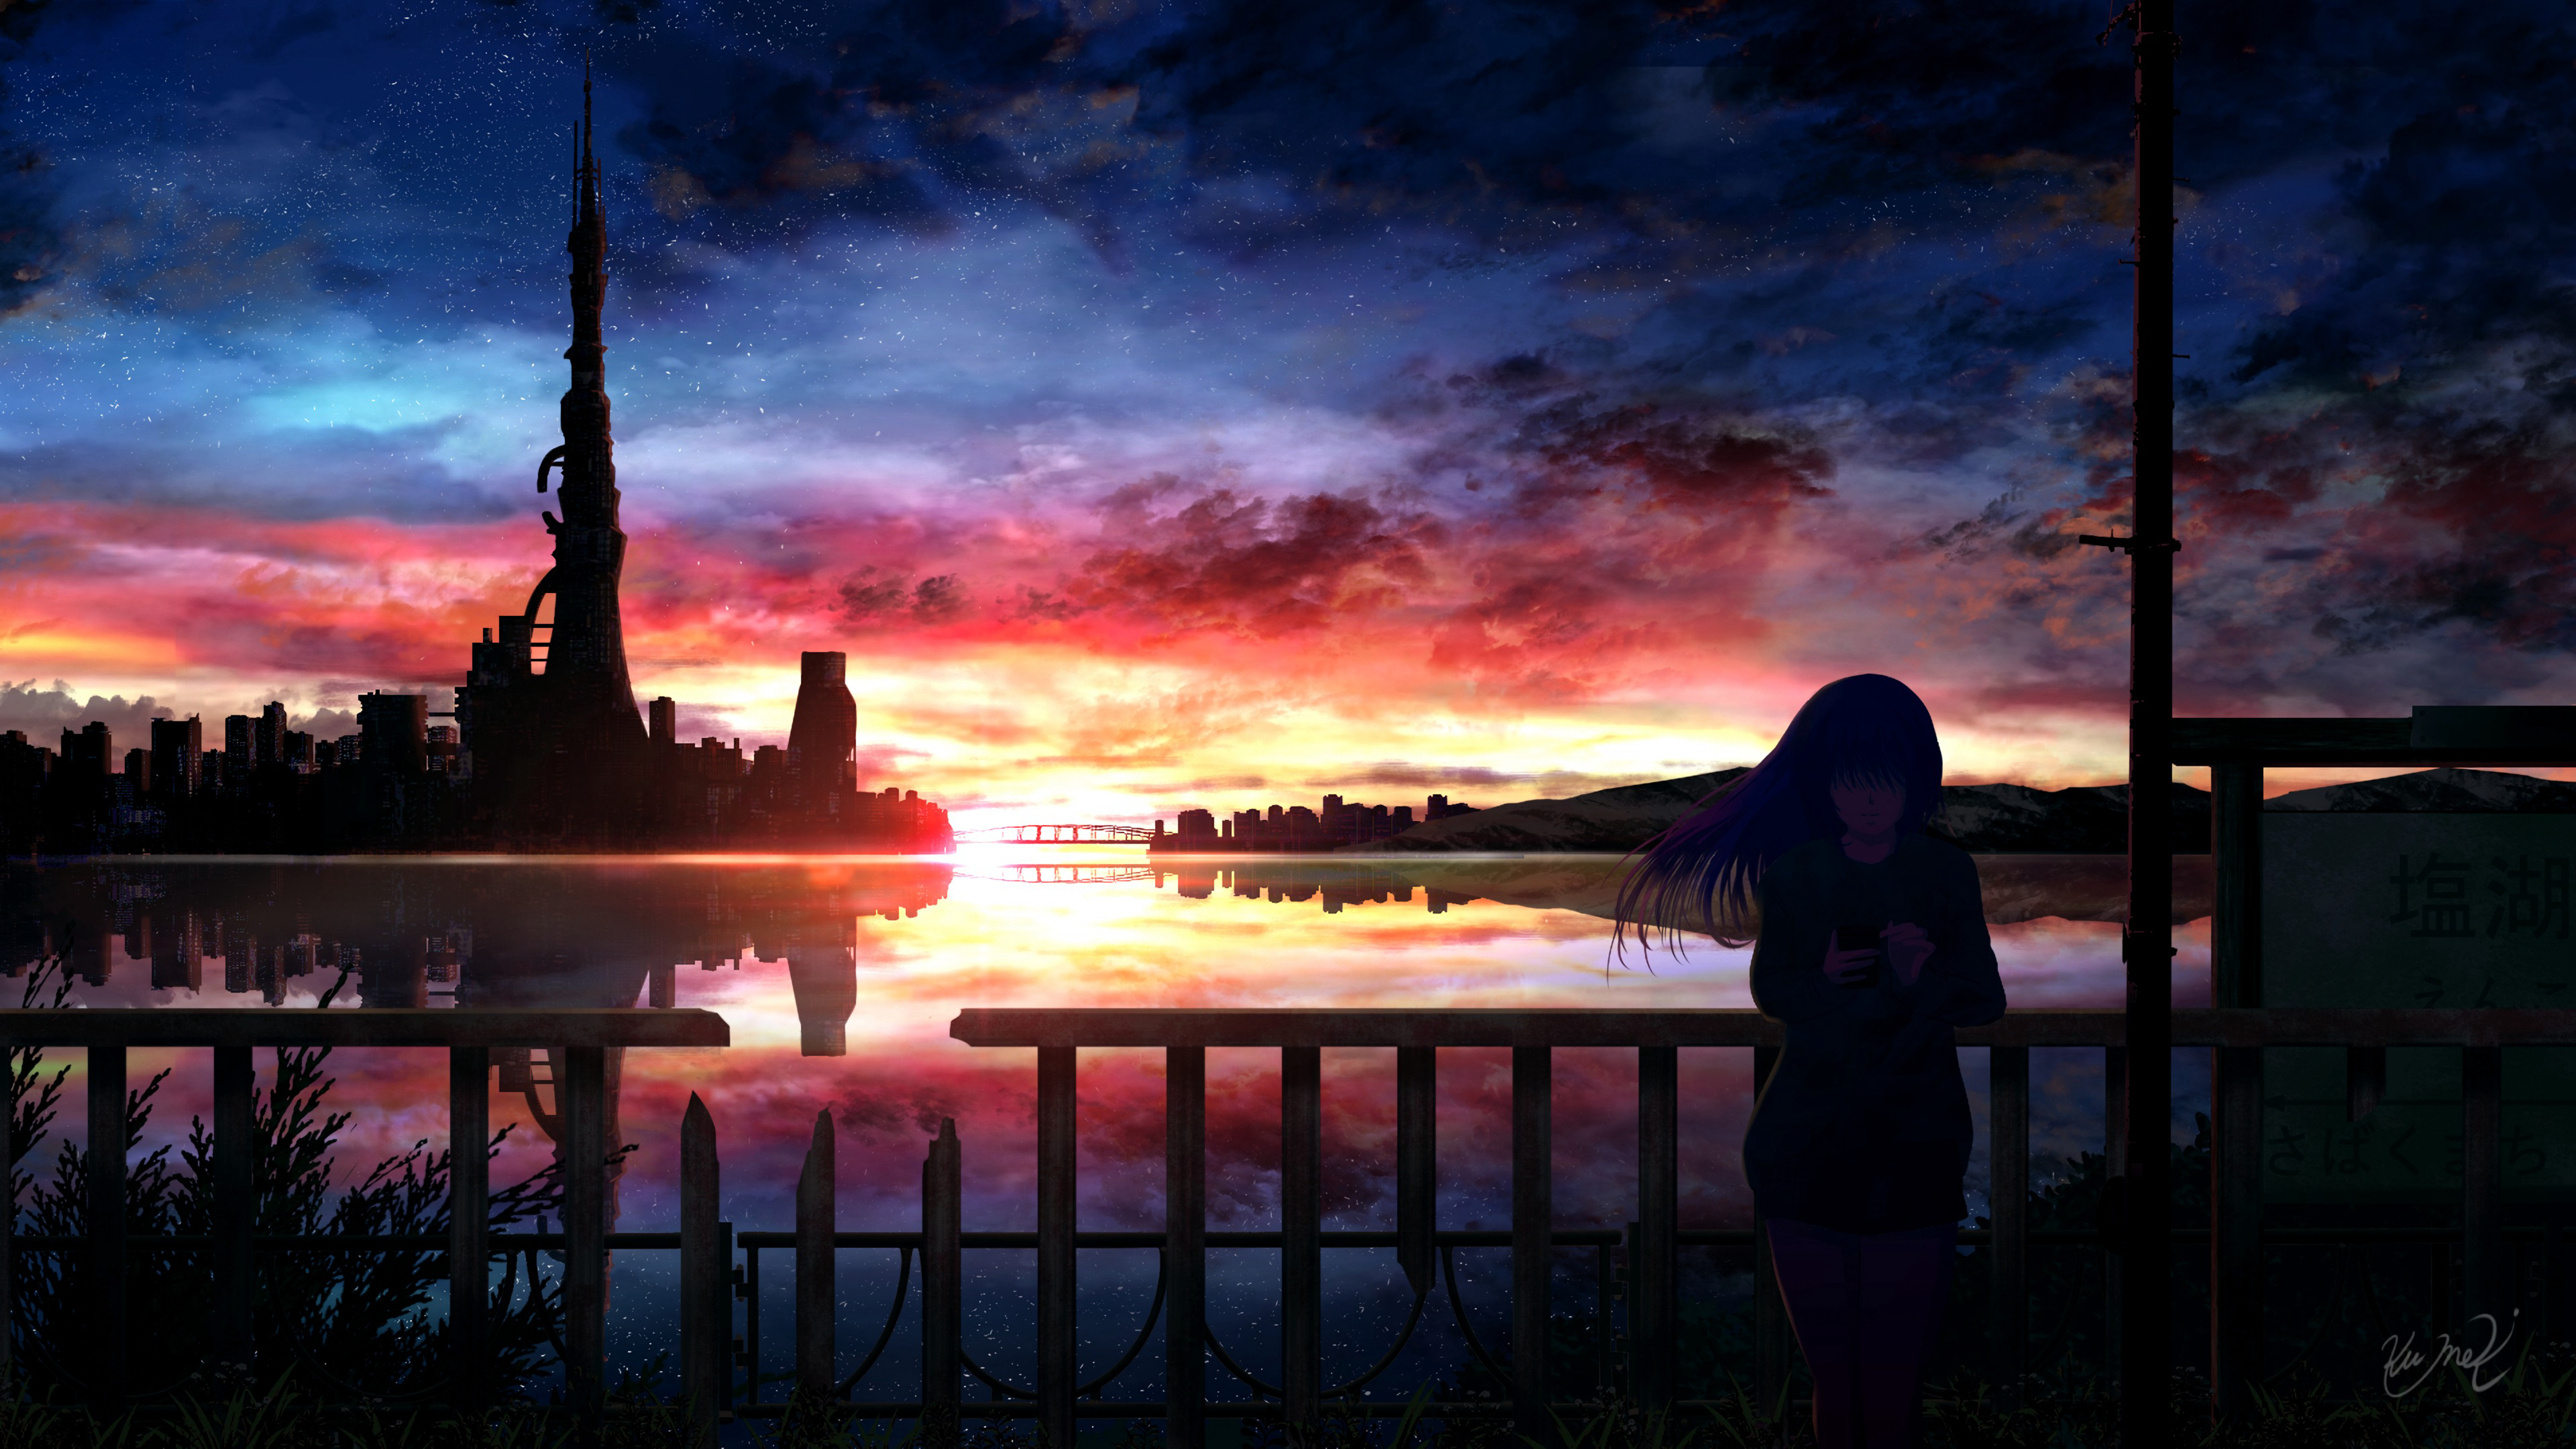 60229 download wallpaper Anime, Girl, Starry Sky, Night, Silhouette screensavers and pictures for free